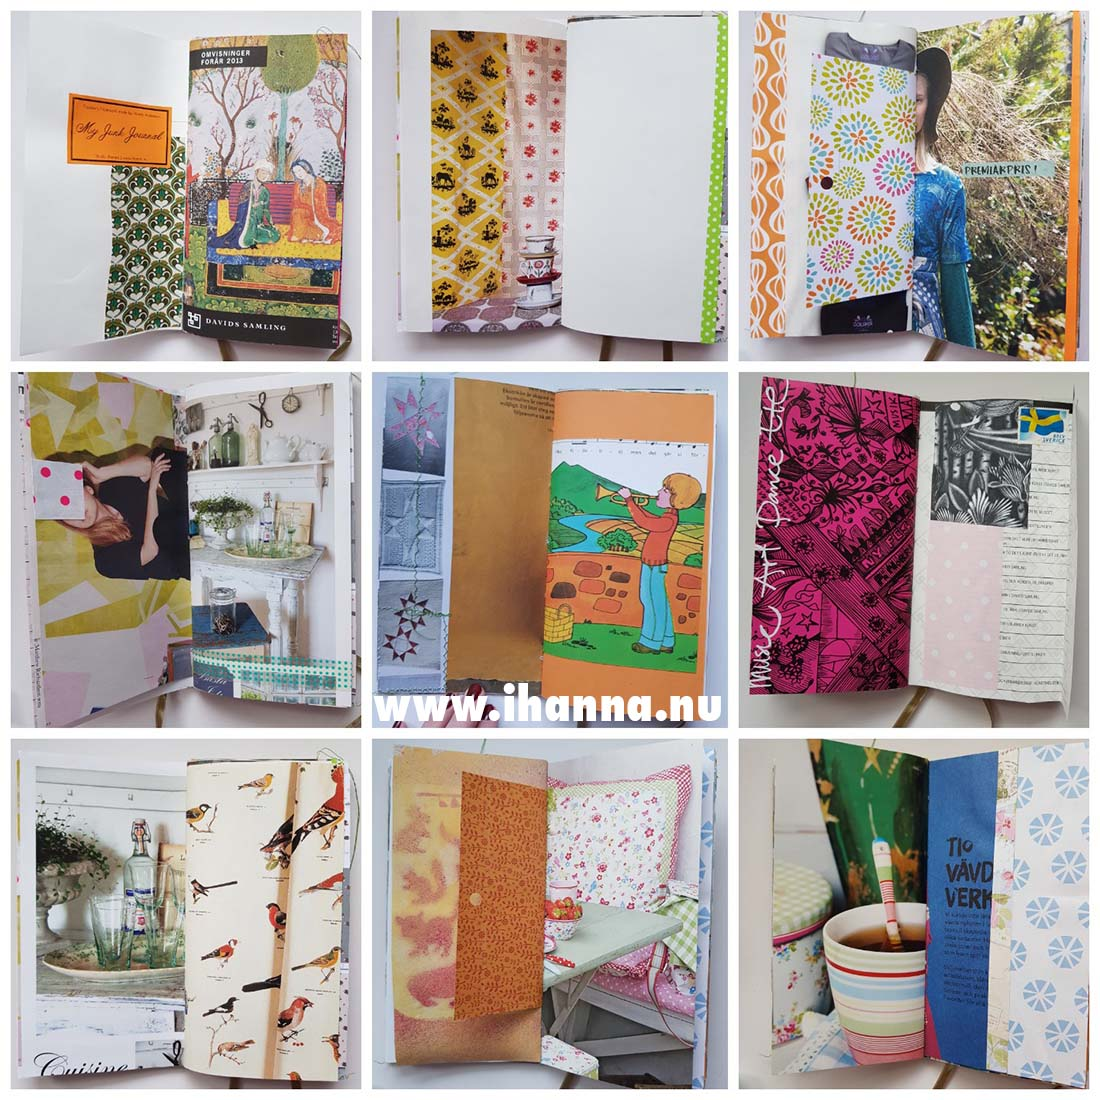 Some of the pages of Junk Journal no 004 #junkjournal